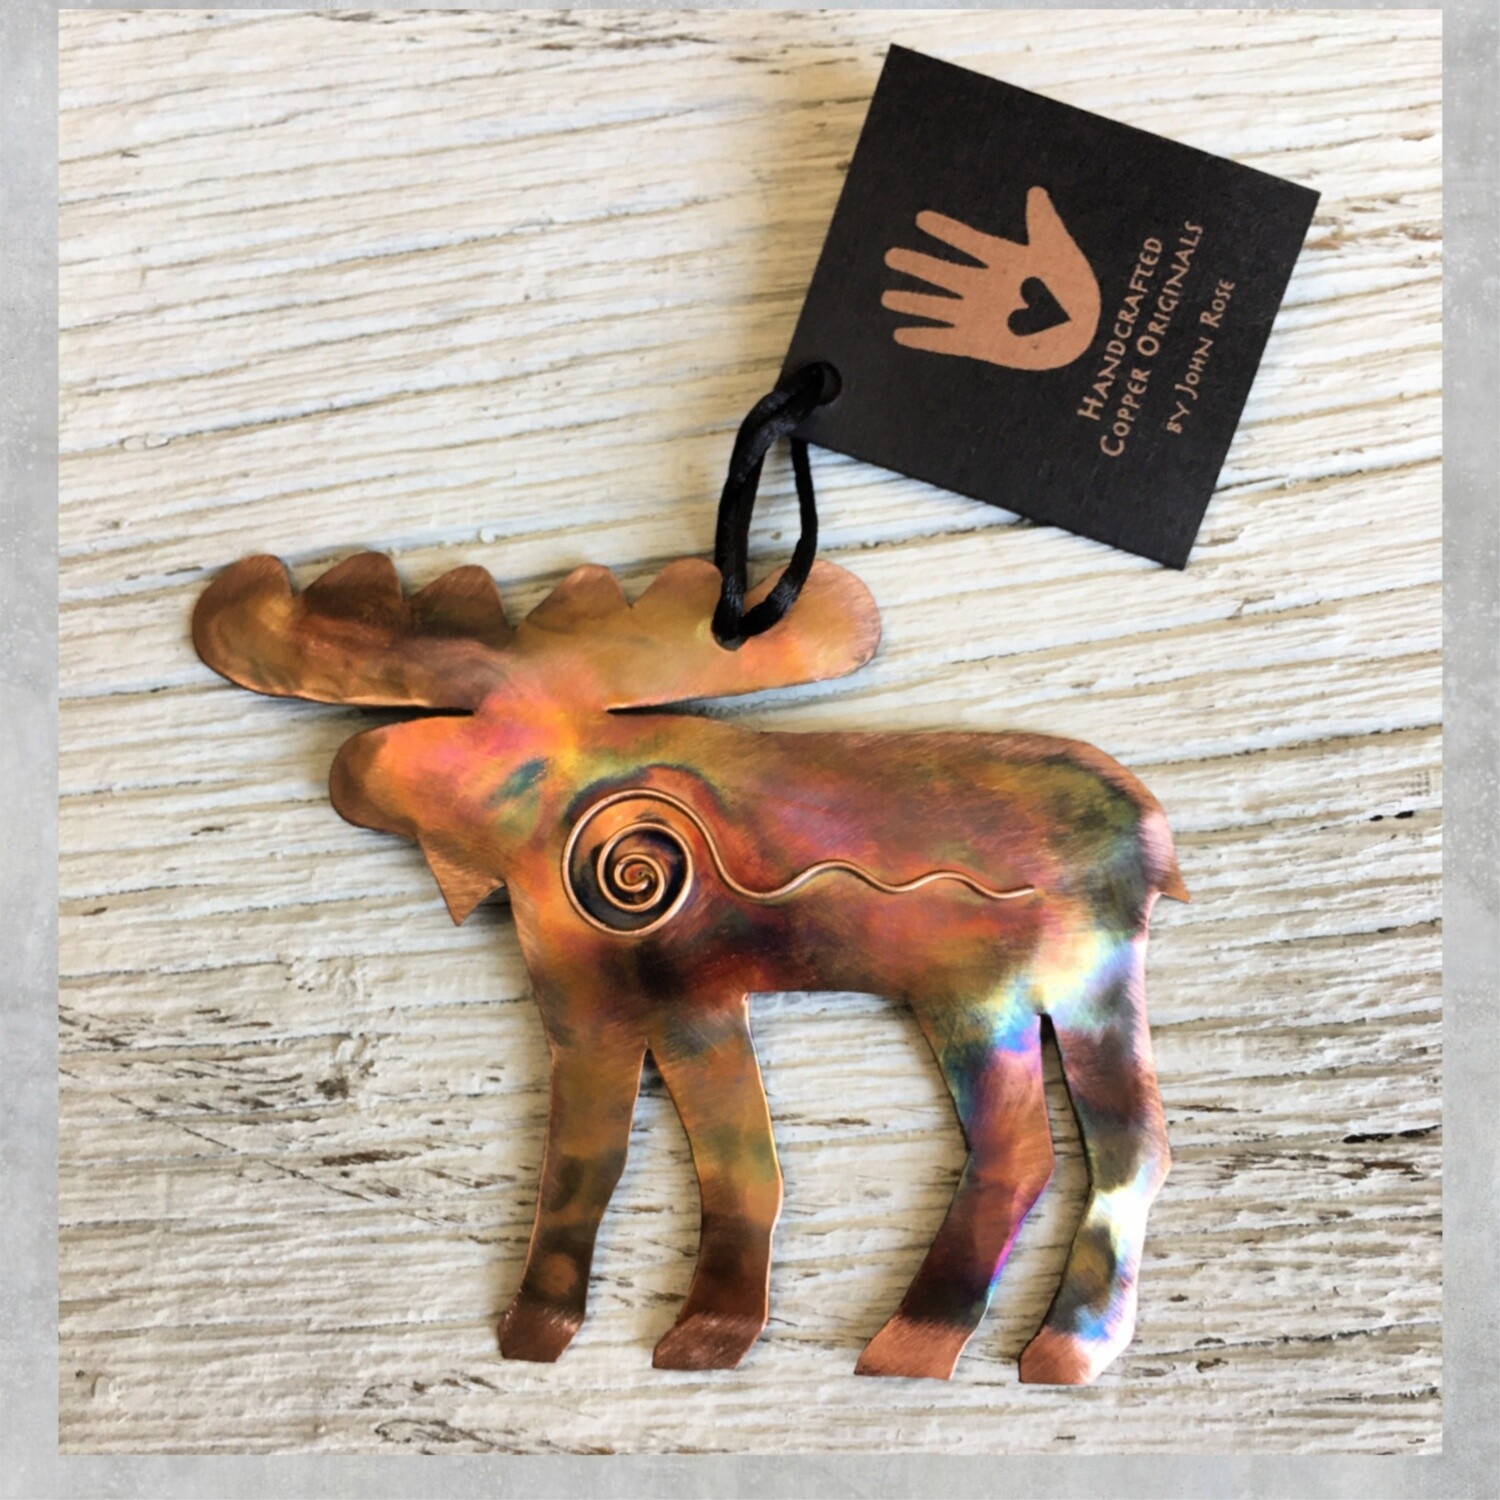 26-16-8 Copper Moose w/ Swirl Ornament $18.50